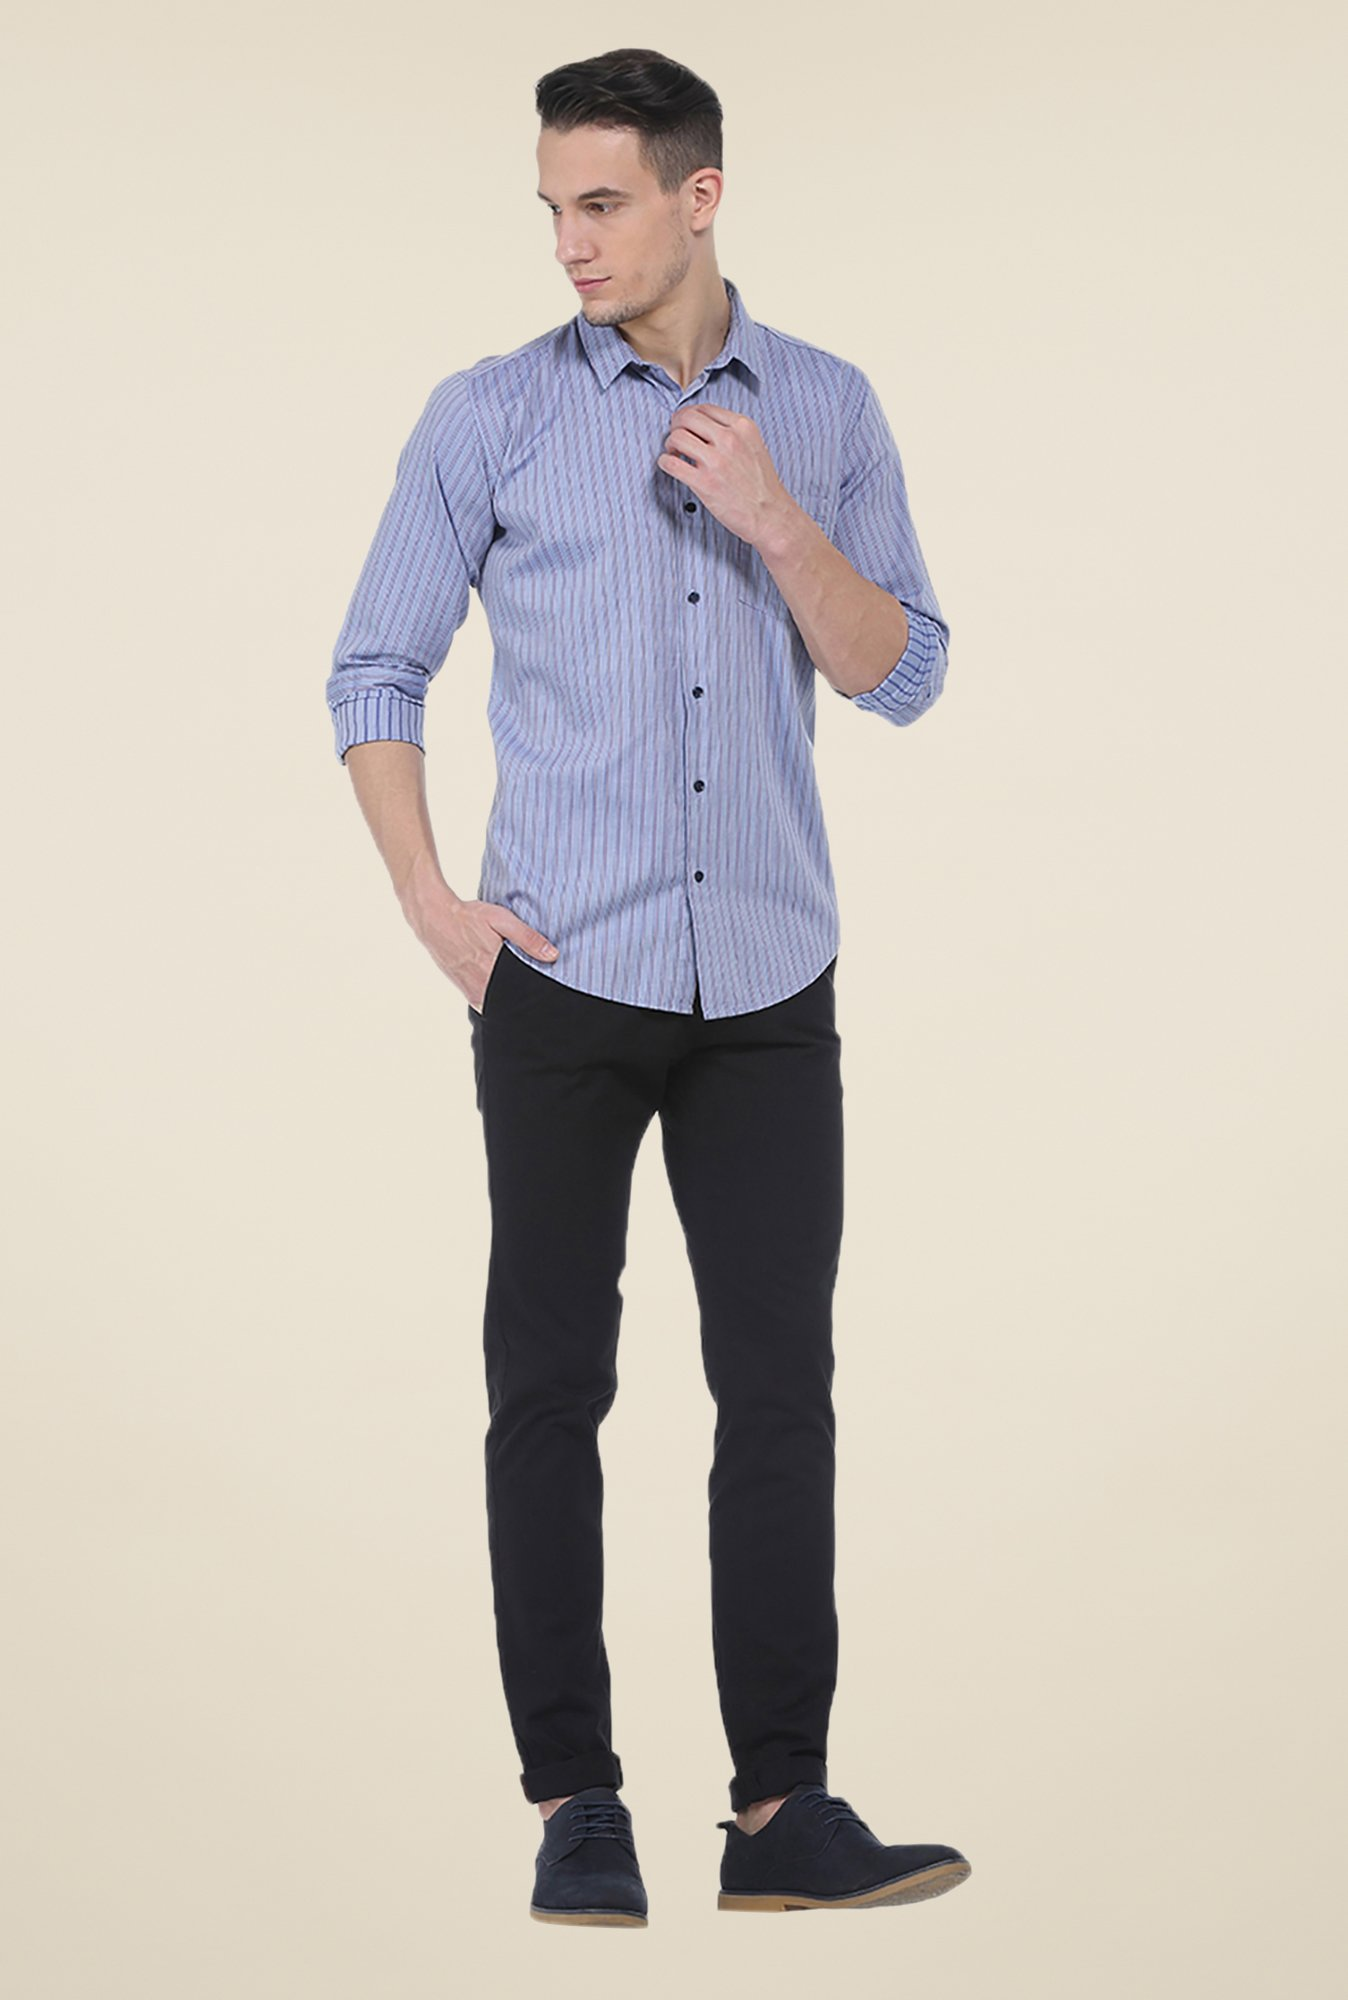 Basics Blue Striped Slim Fit Shirt